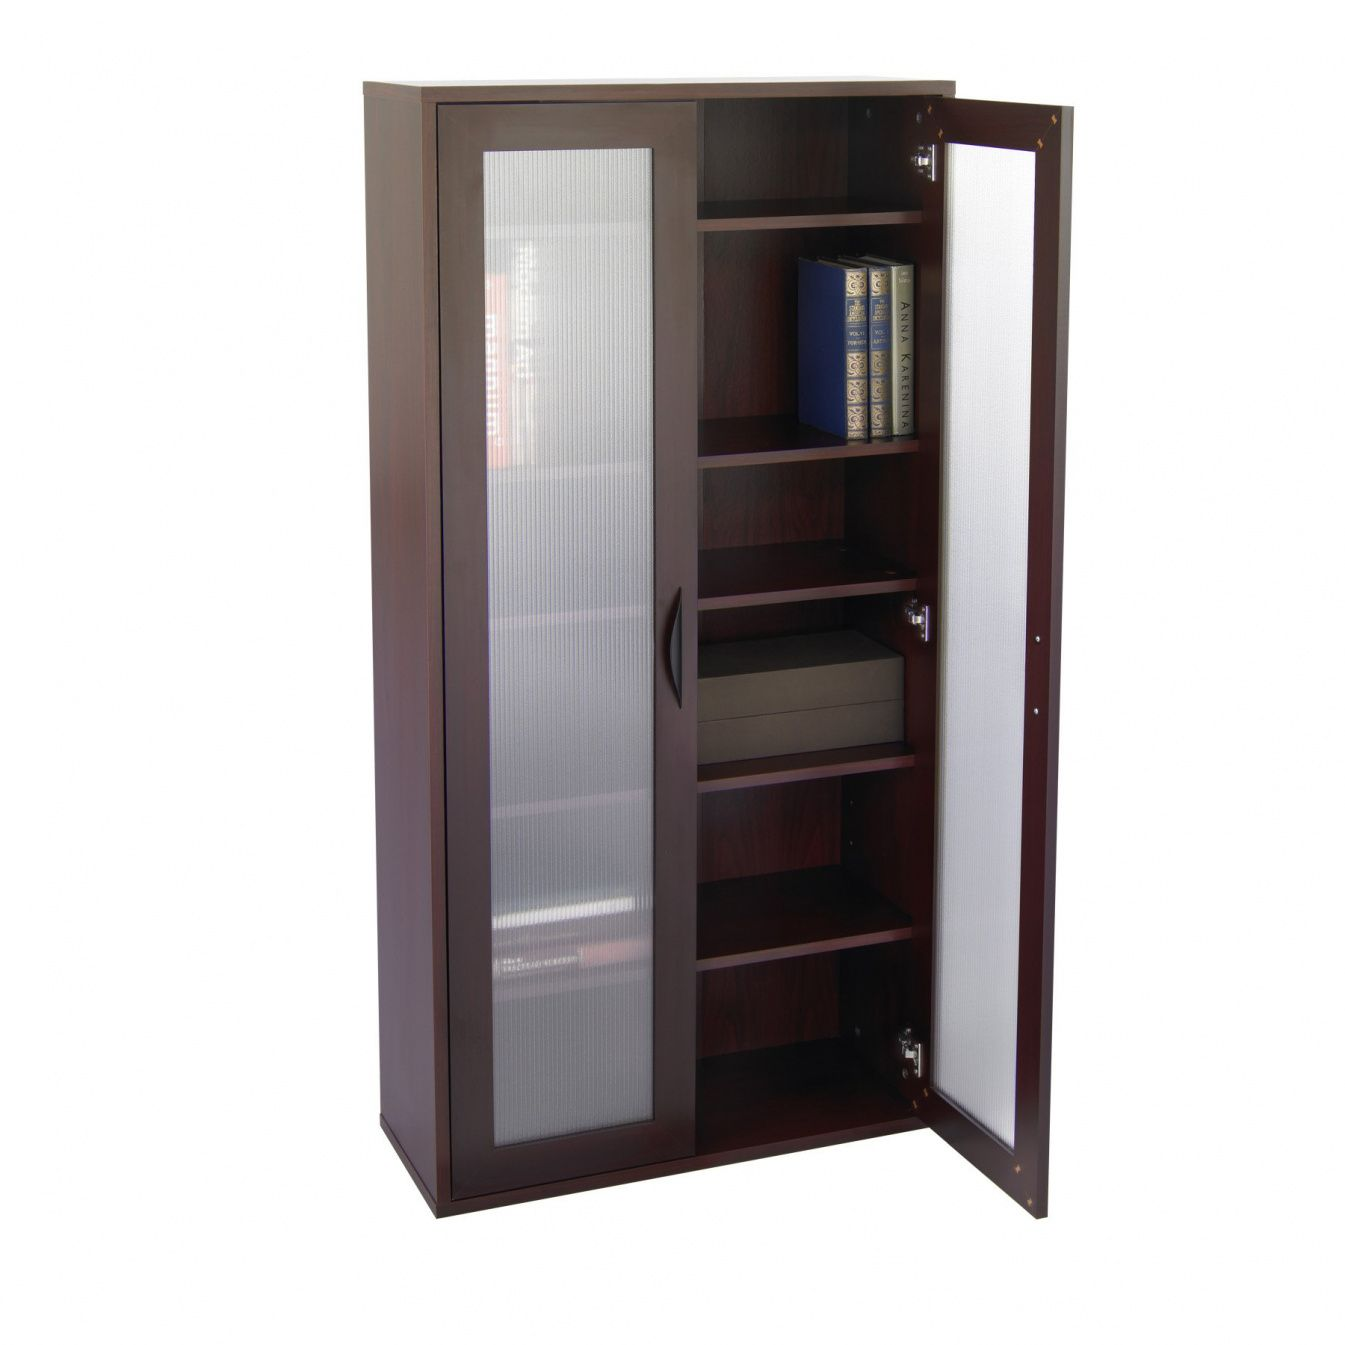 office bookcases with doors. Mahogany Bookcase With Glass Doors - Home Office Furniture Set Check More At Http:/ Bookcases C